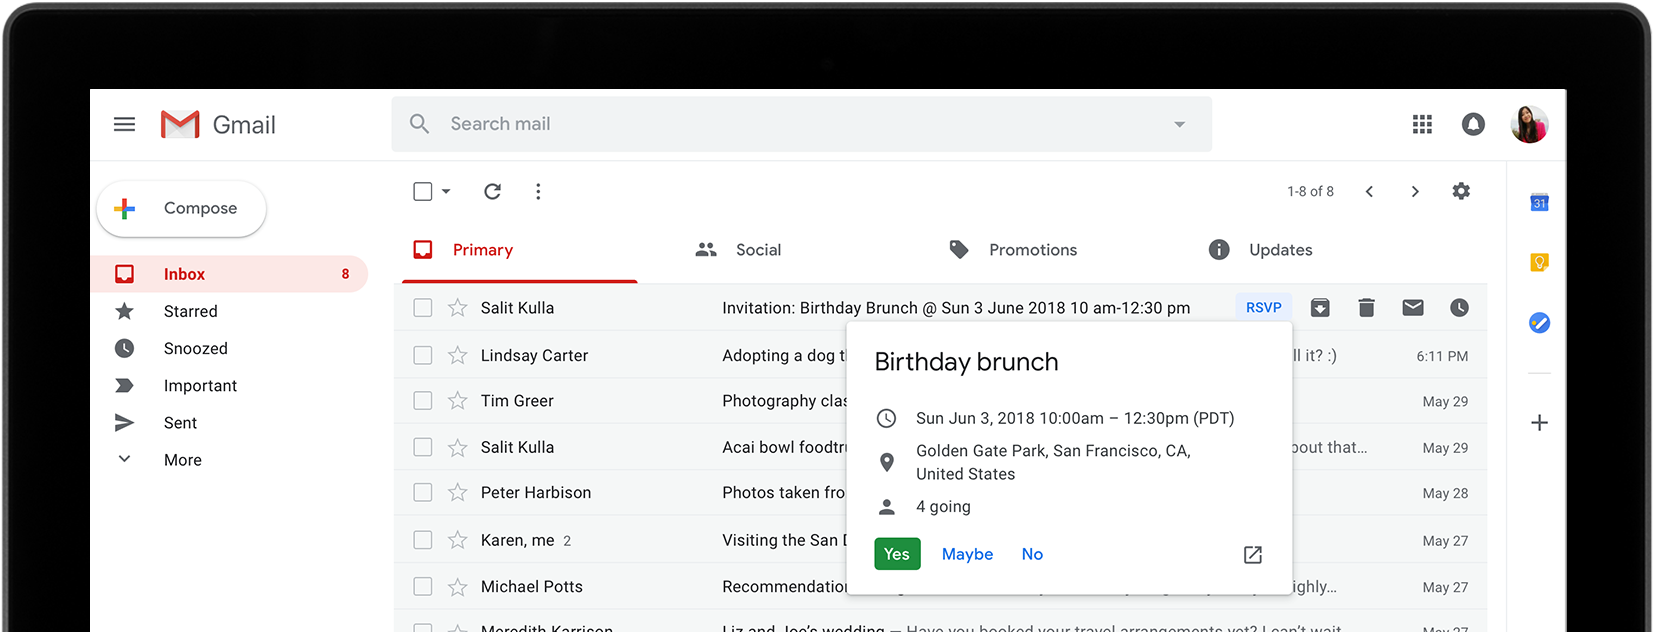 People are liking gmail fresh new look